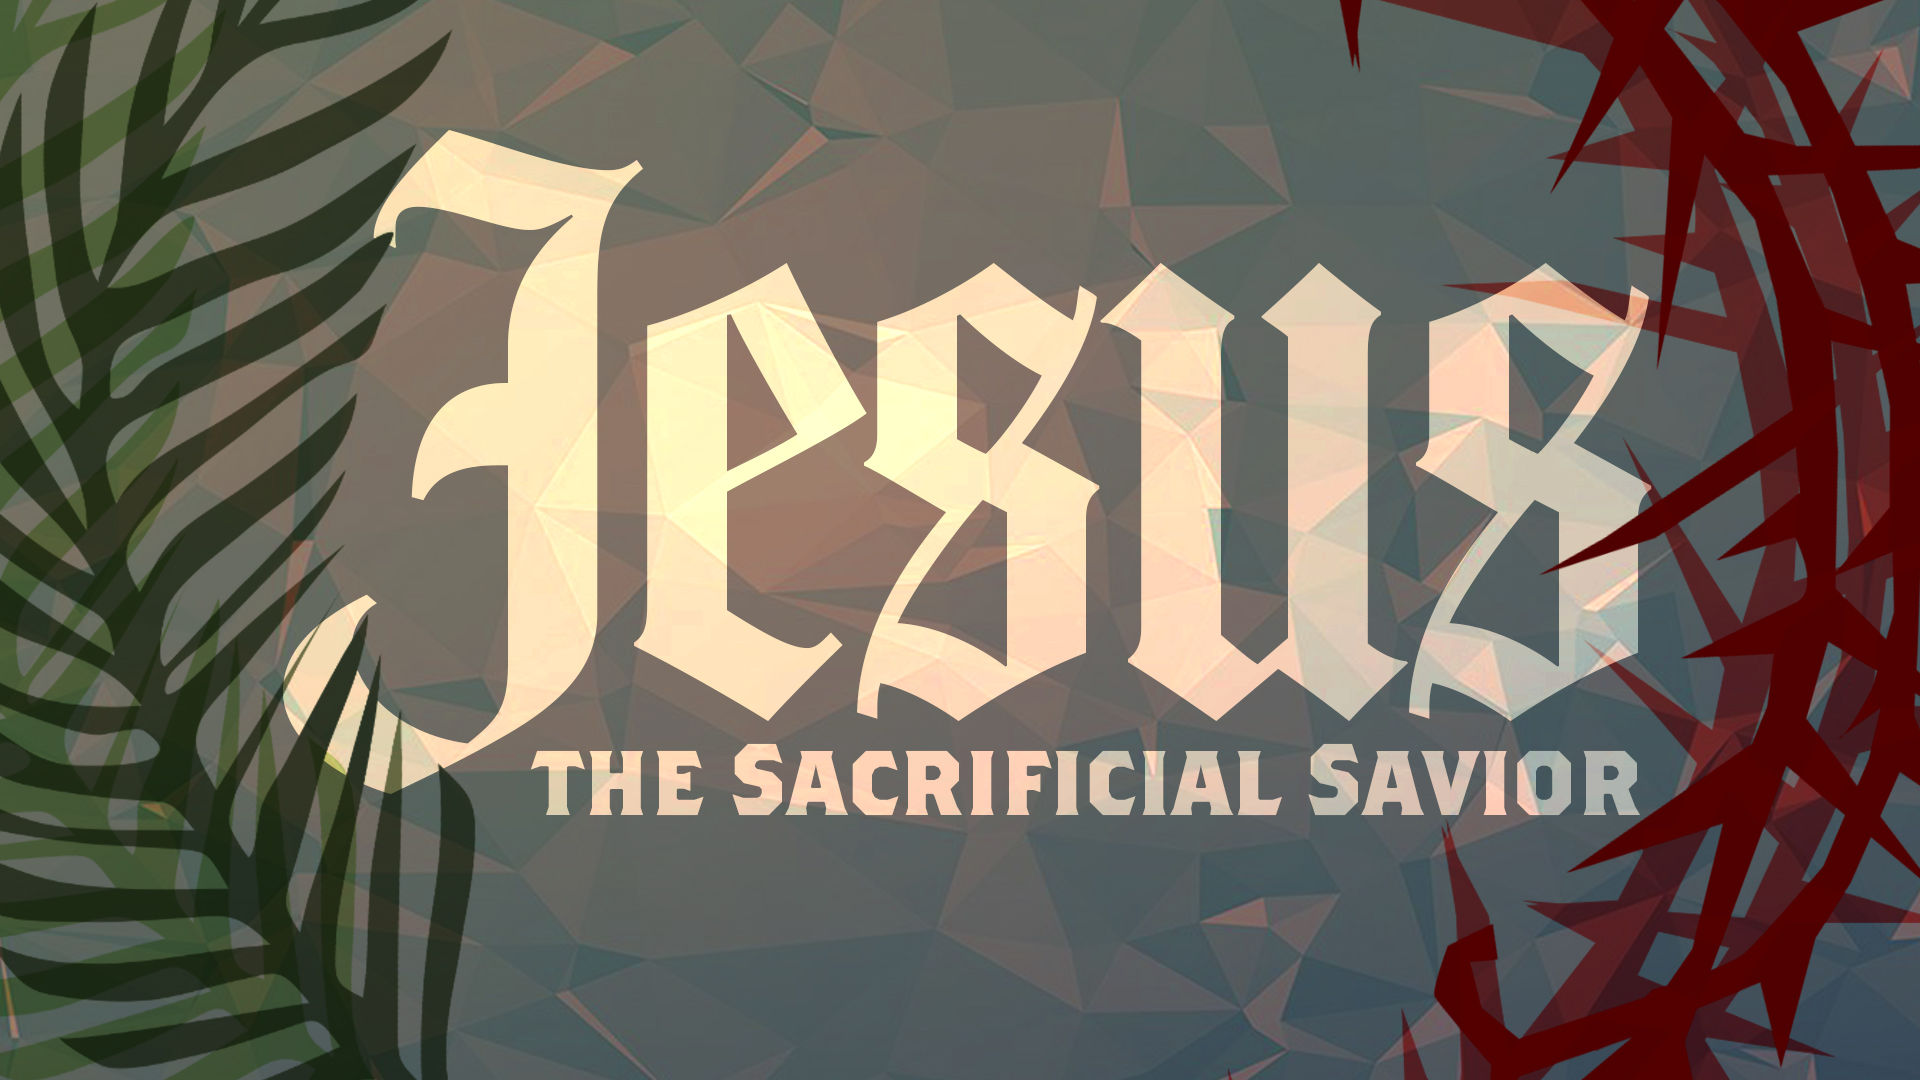 Jesus: The Sacrificial Savior